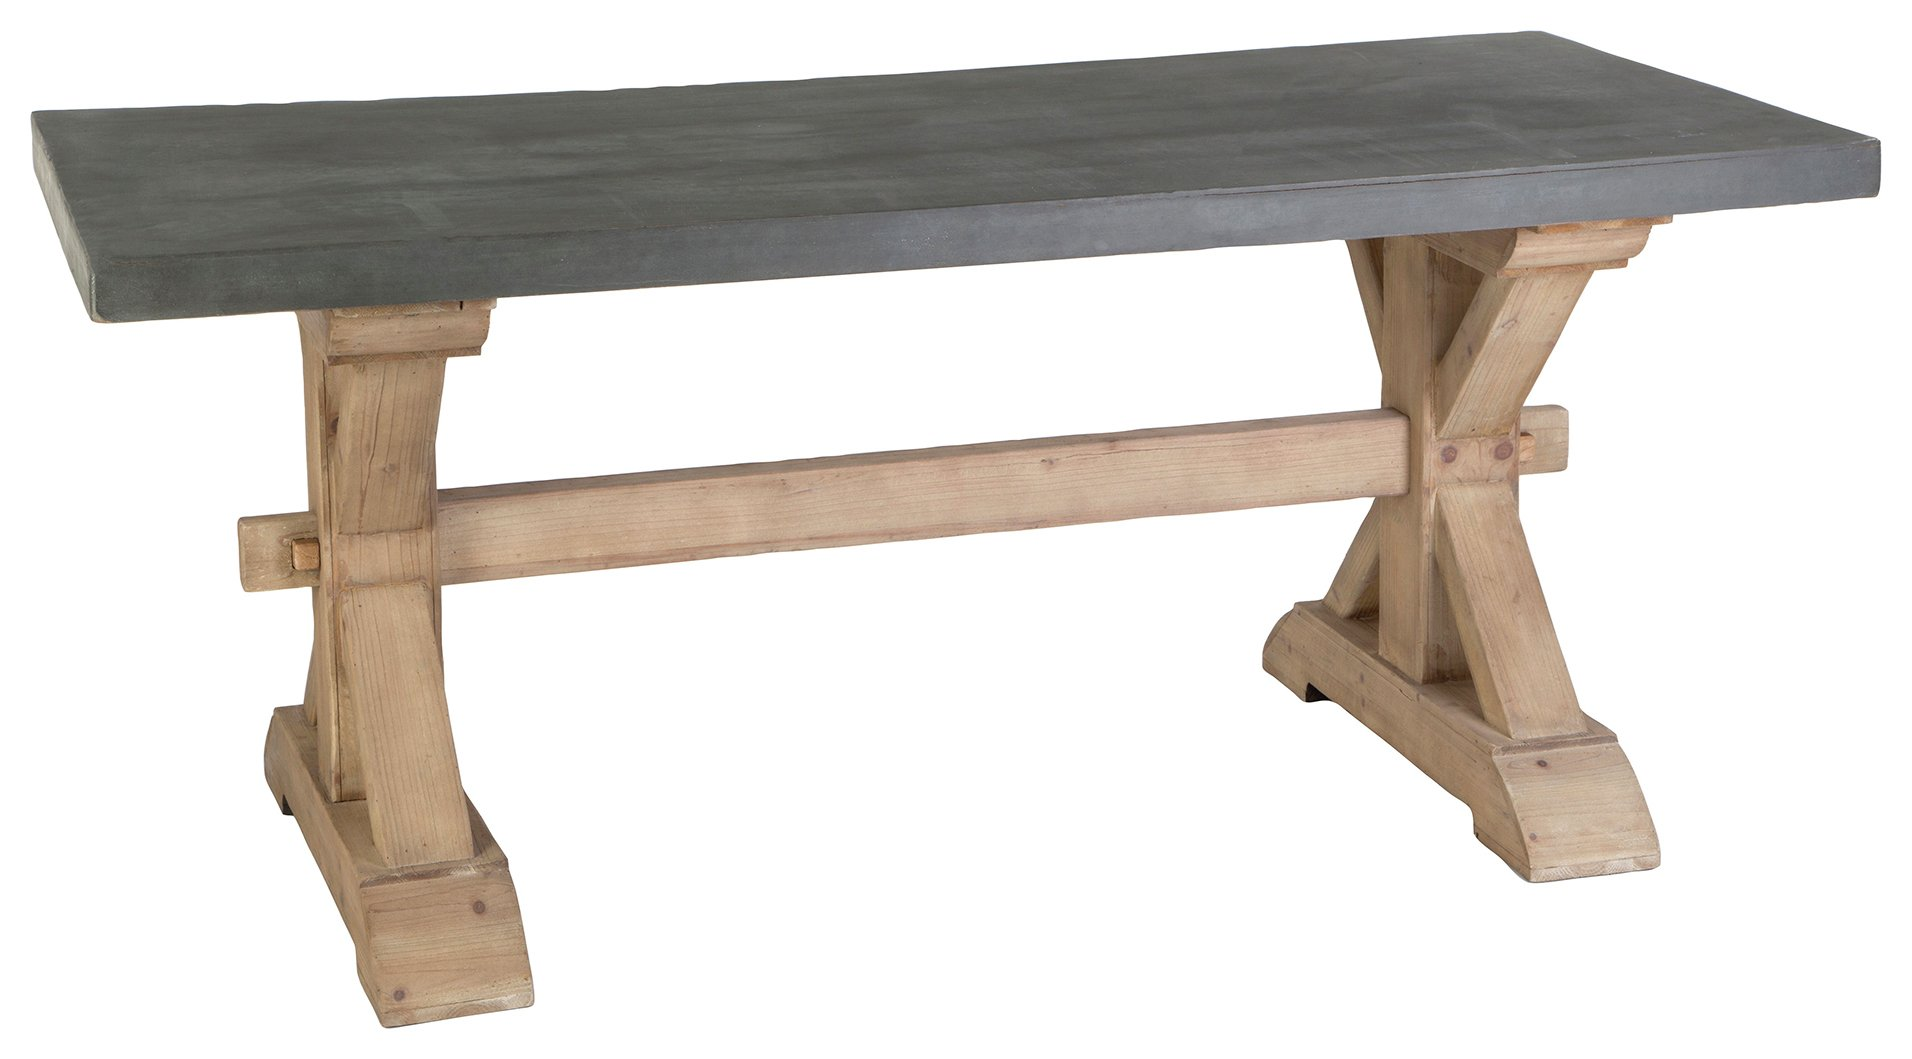 Image of Premier Housewares - Pompeii Dining Table - Grey